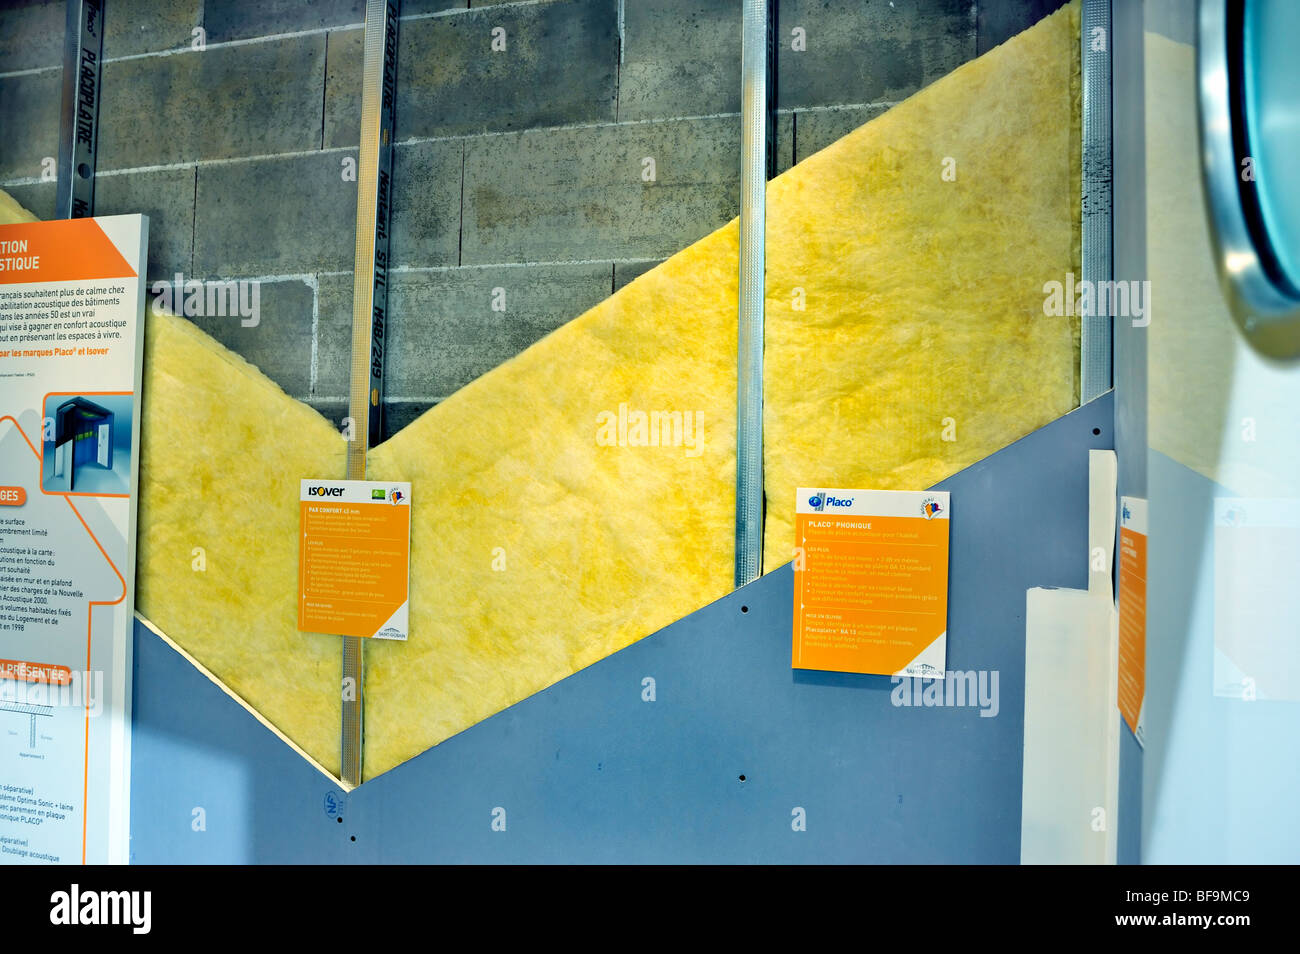 Wall Insulation Stock Photos & Wall Insulation Stock Images - Alamy